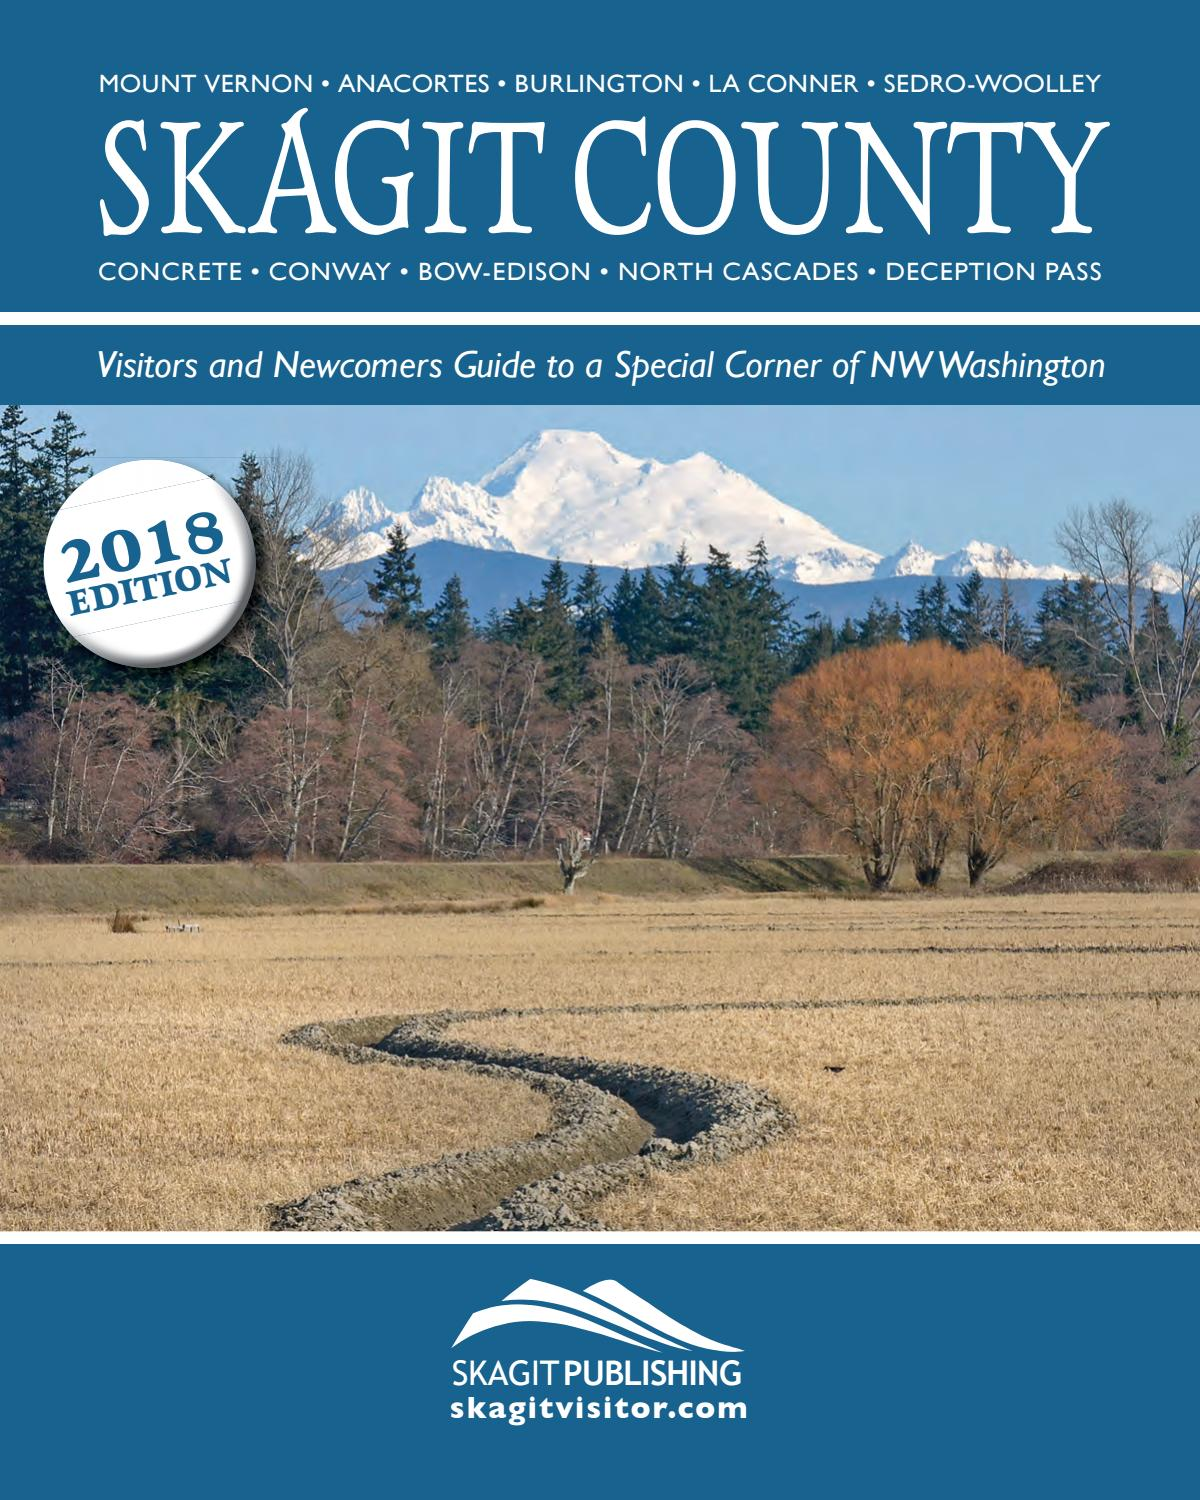 2018 Skagit County Visitors Guide by Skagit Publishing - issuu